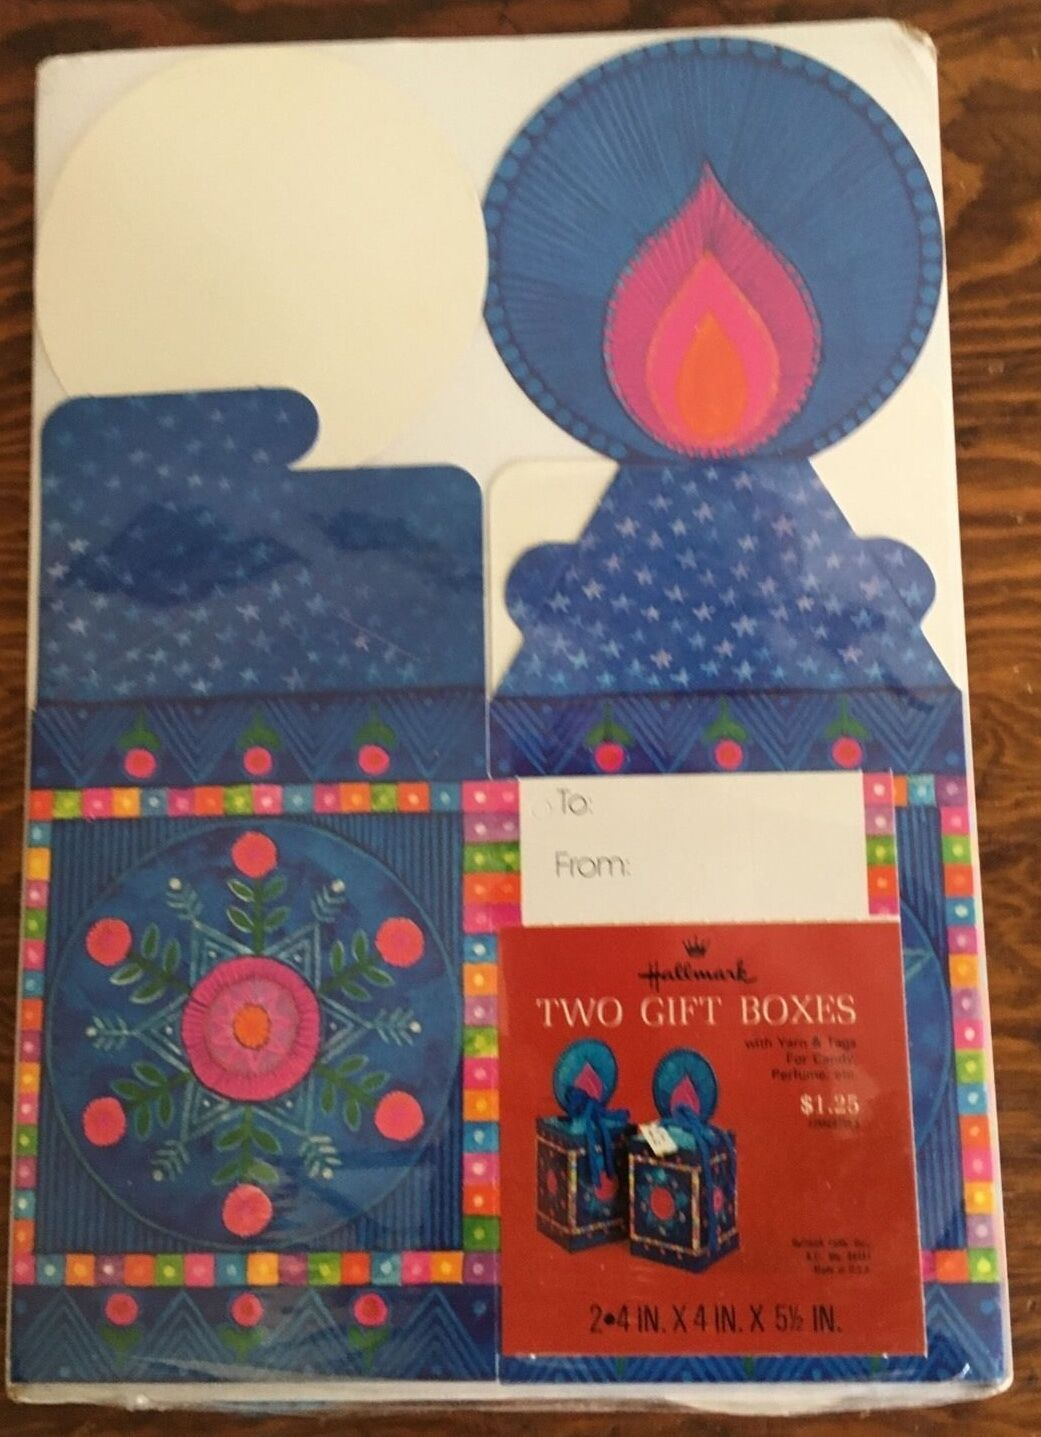 Sealed Vintage Hallmark Gift Boxes Yarn Blue Candle Wrap Wrapping 60s 70s Xmas